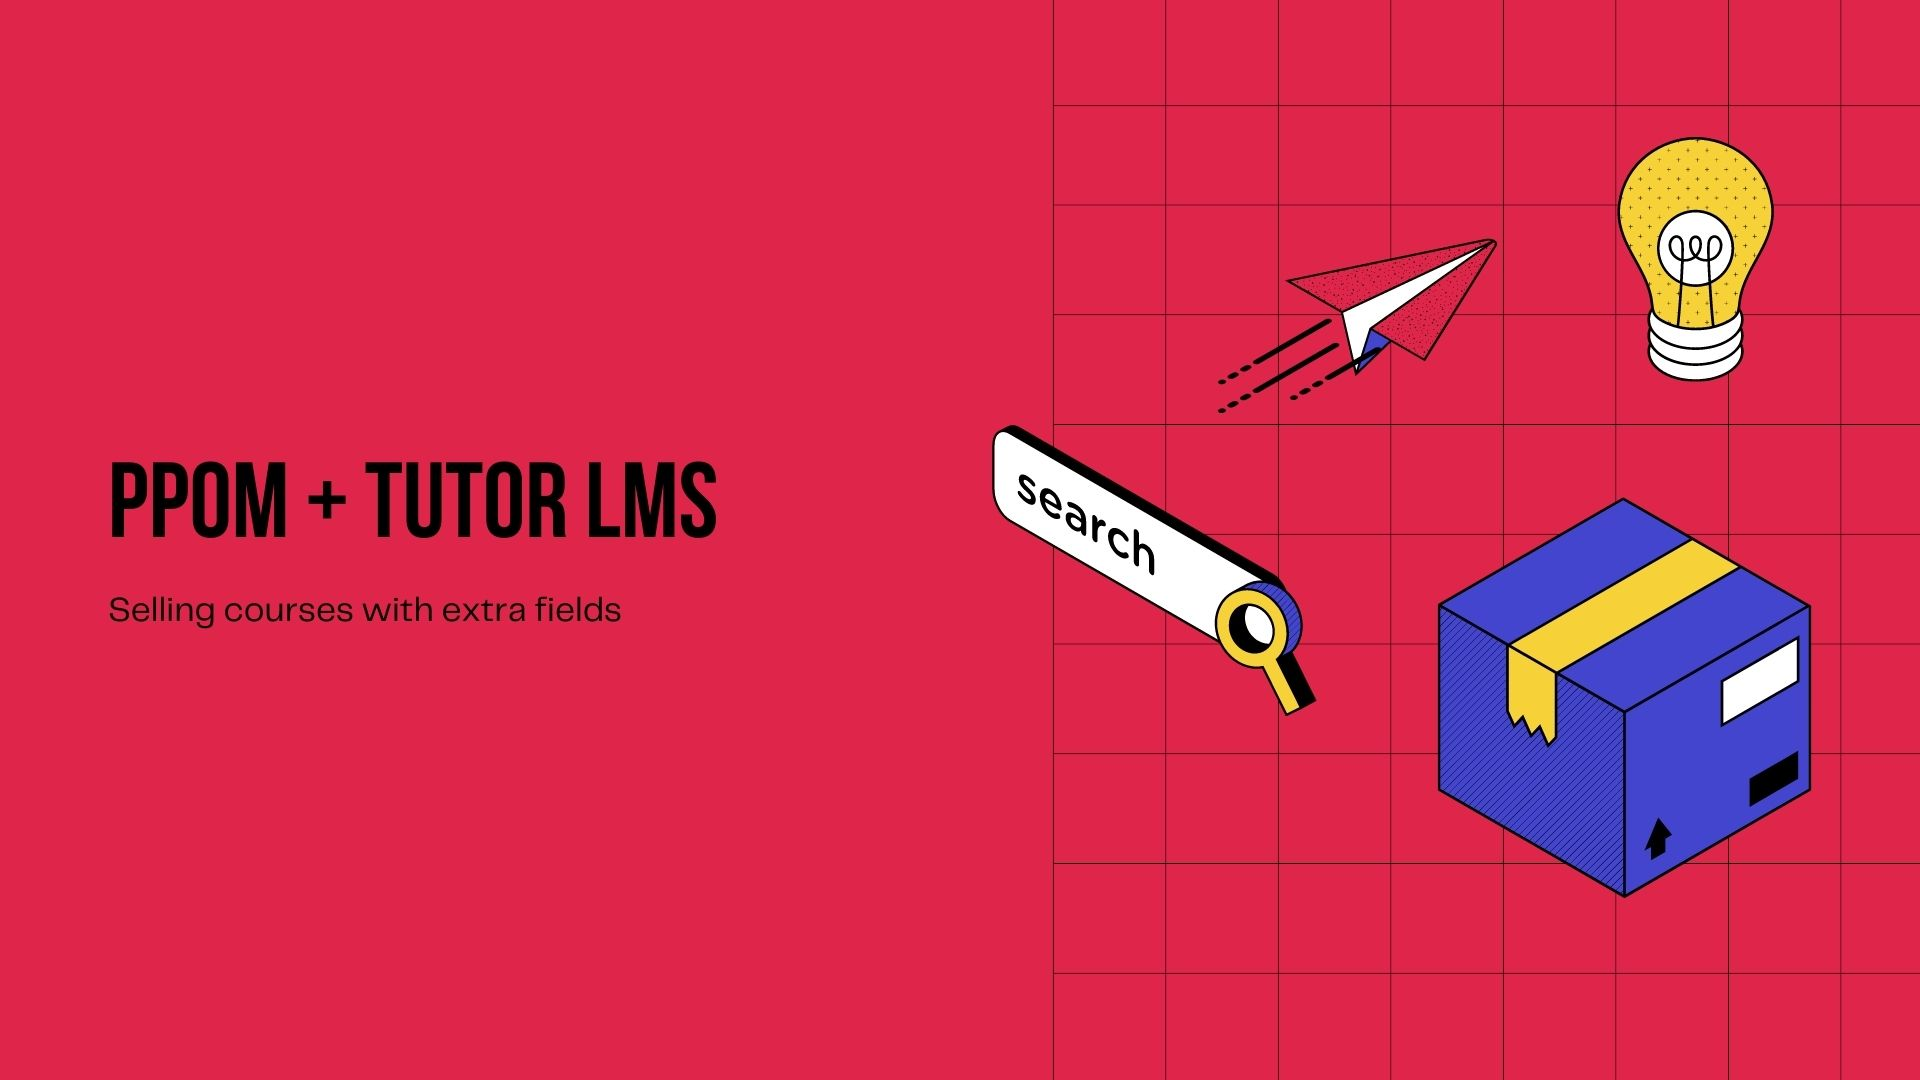 PPOM With Tutor LMS – Sell Courses With Extra Fields